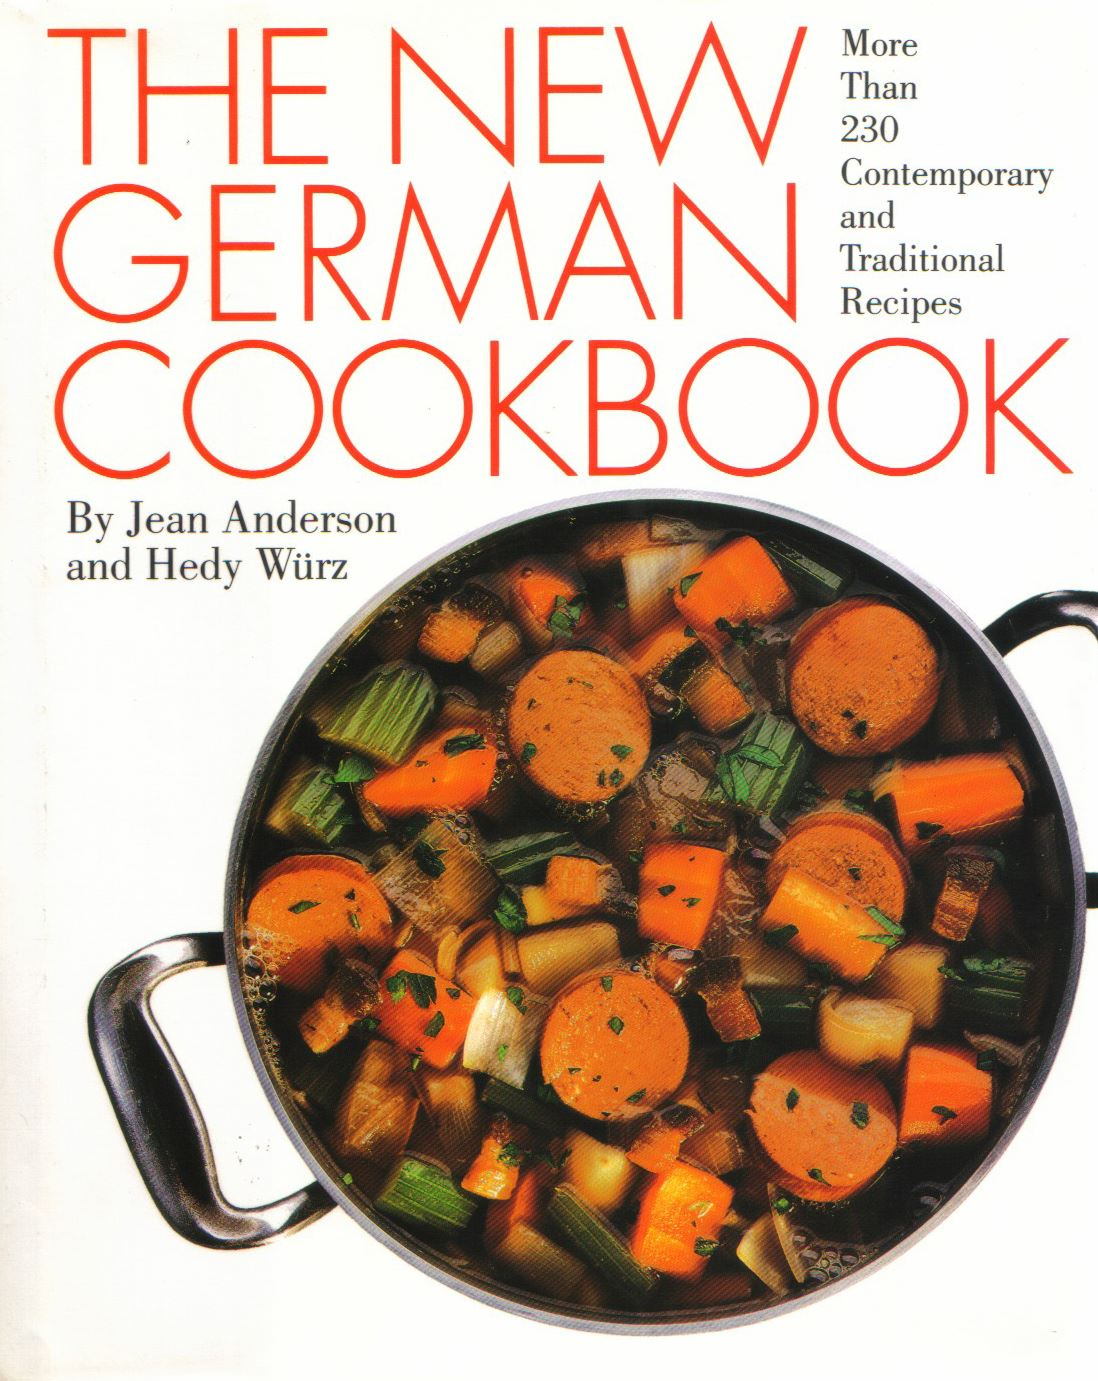 "Germancookbook ""The New German Cookbook"" by Jean Anderson"